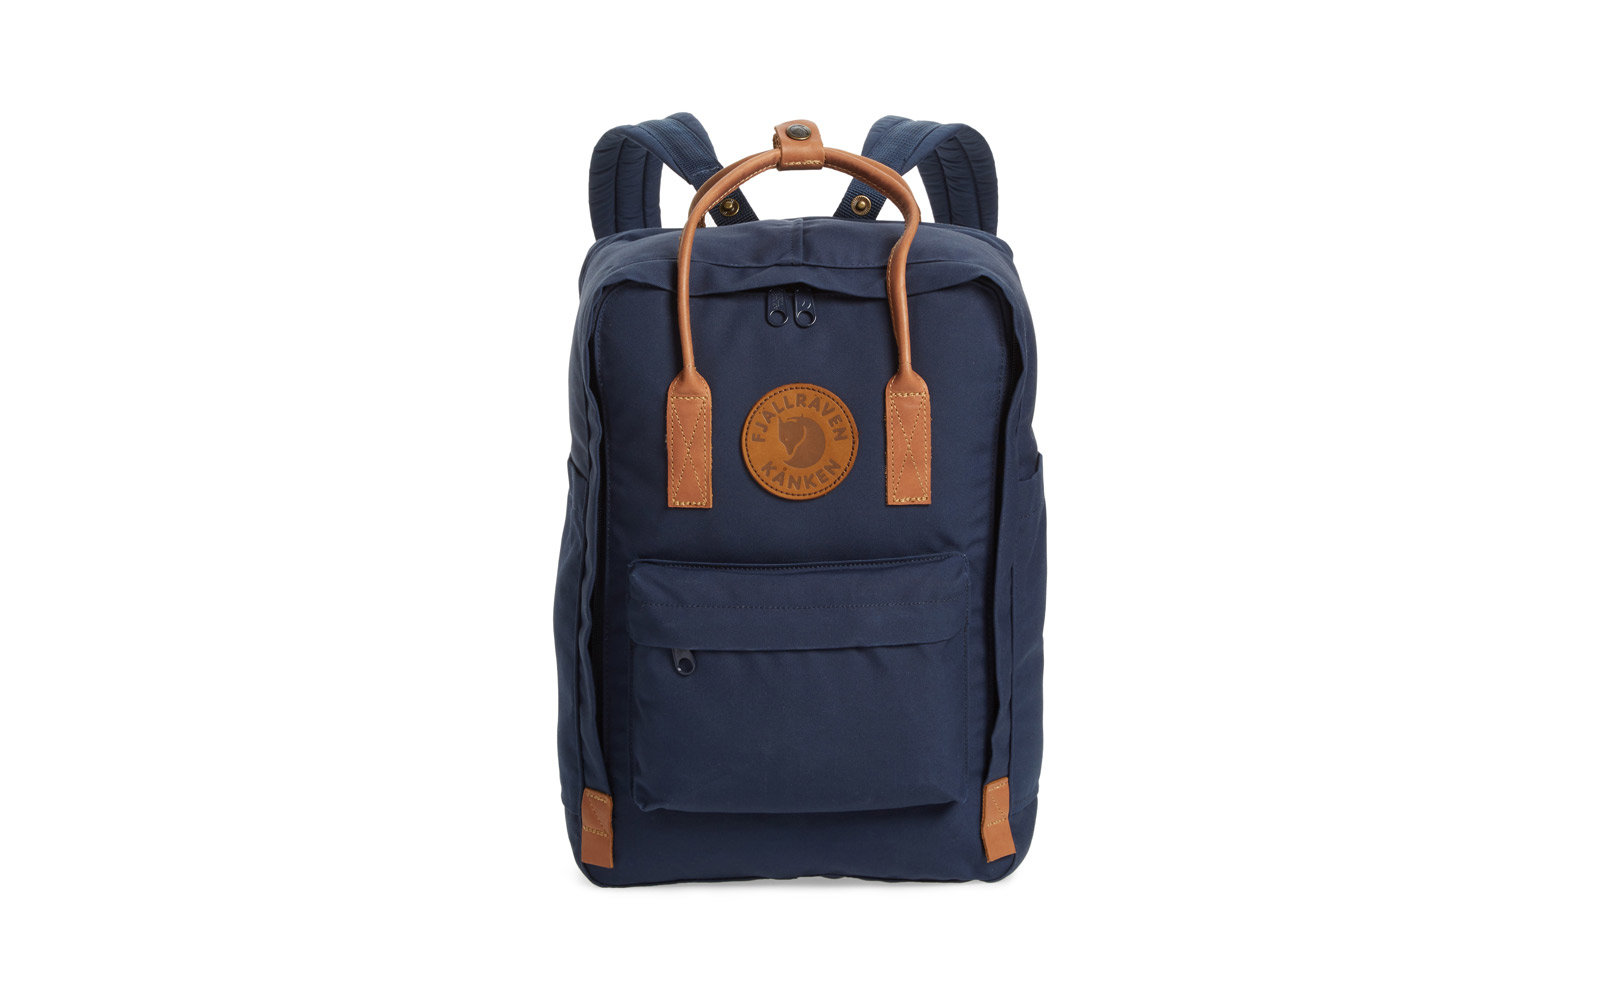 8a7e73abb4da Best Waterproof Laptop Backpack  Fjallraven Kanken